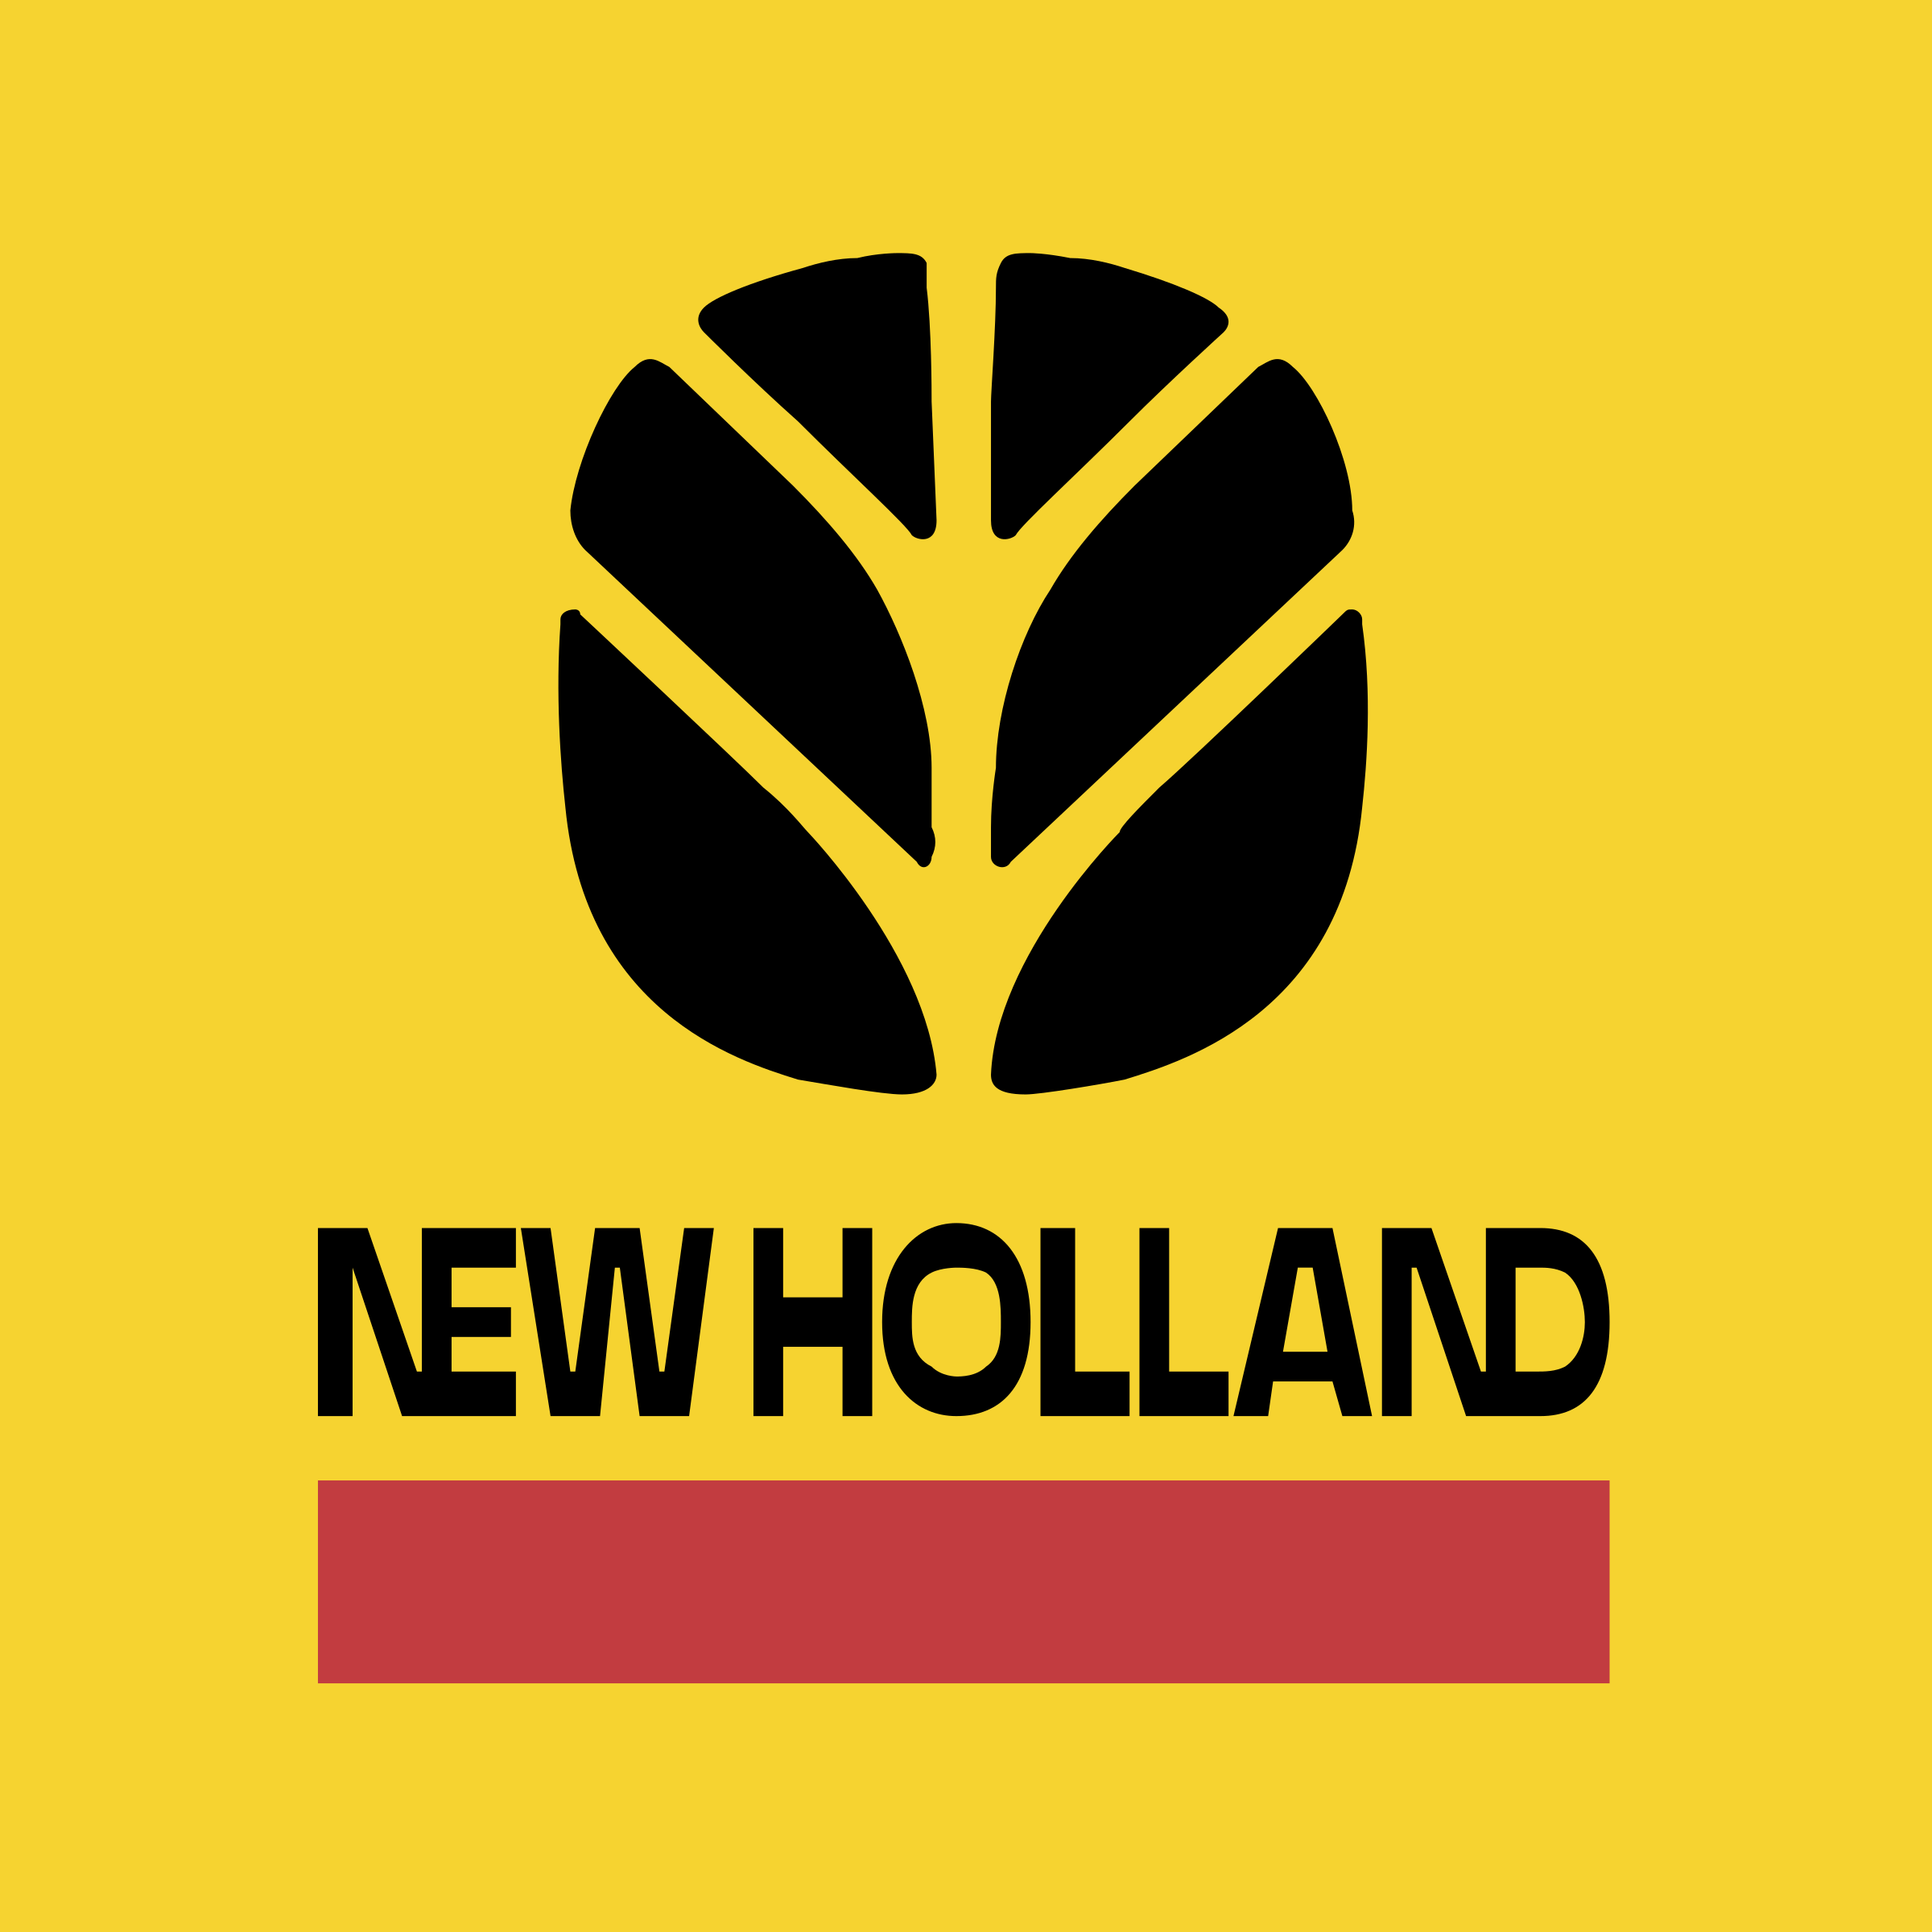 New Holland Construction Logo Png Transparent Svg Vector Freebie Supply,Simple Horse Embroidery Design